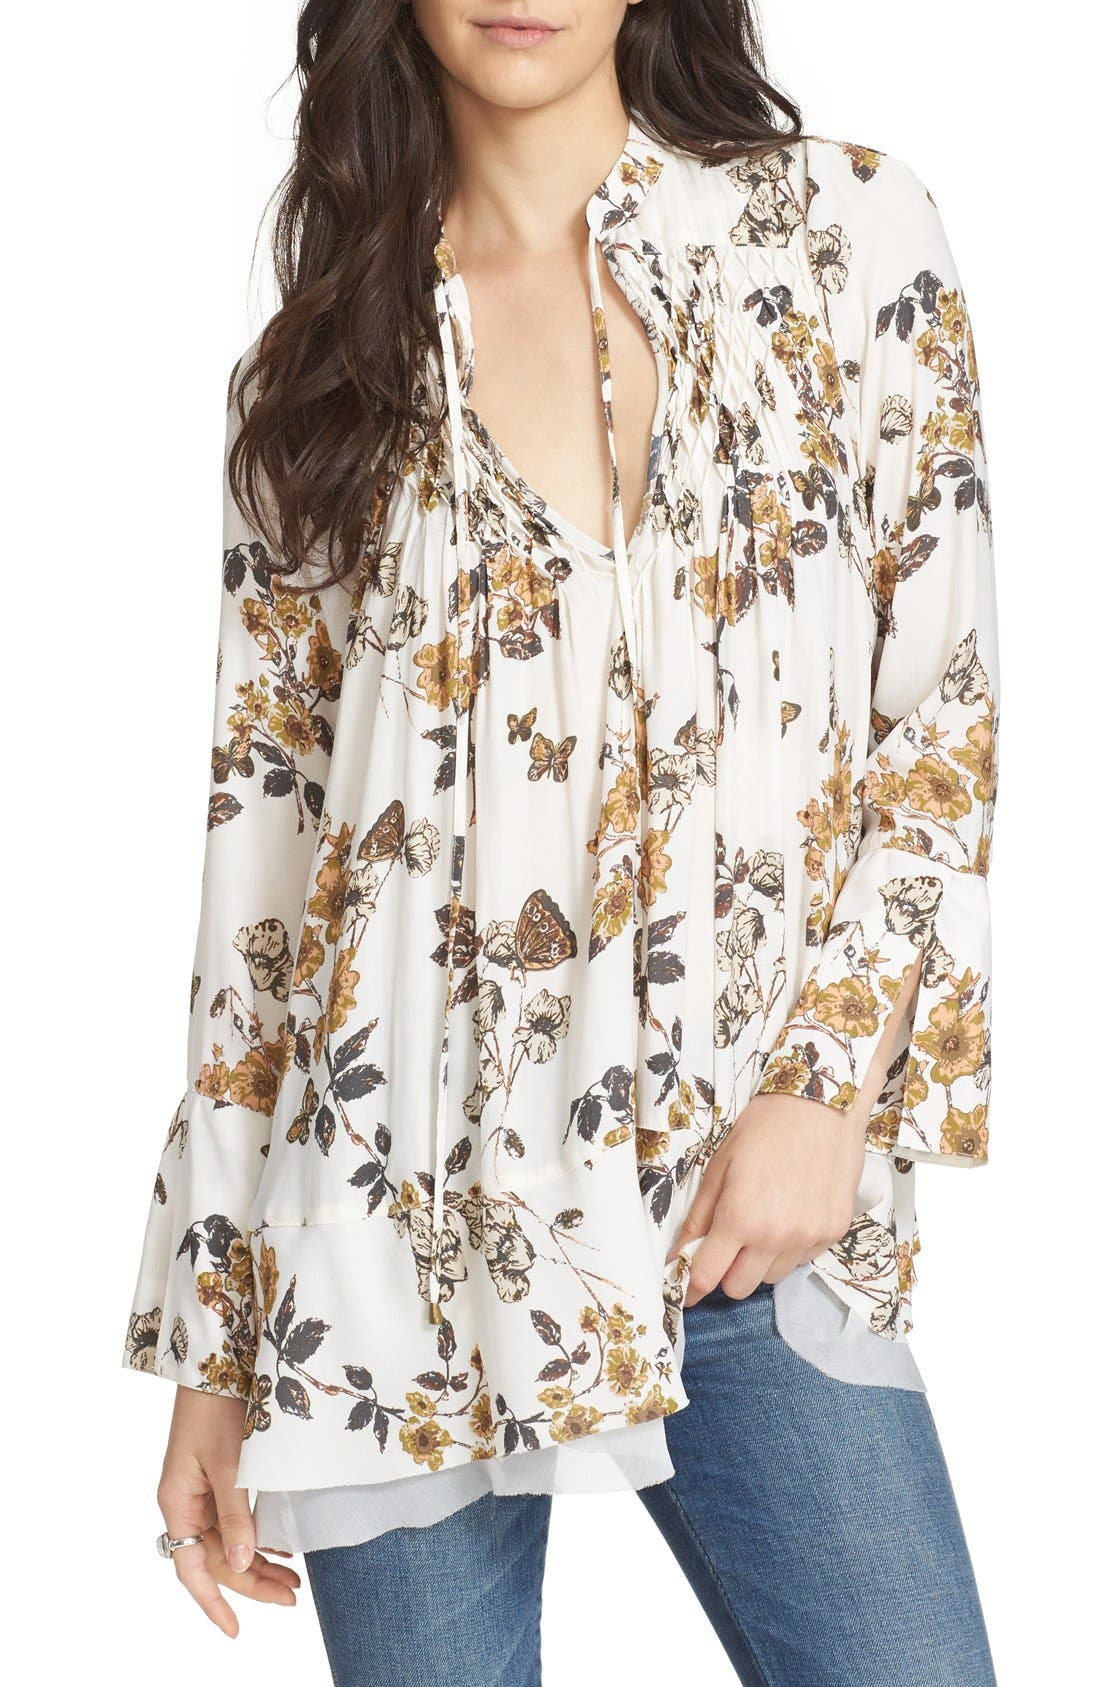 Alternate Image 1 Selected - Free People Floral Print Smocked Tunic